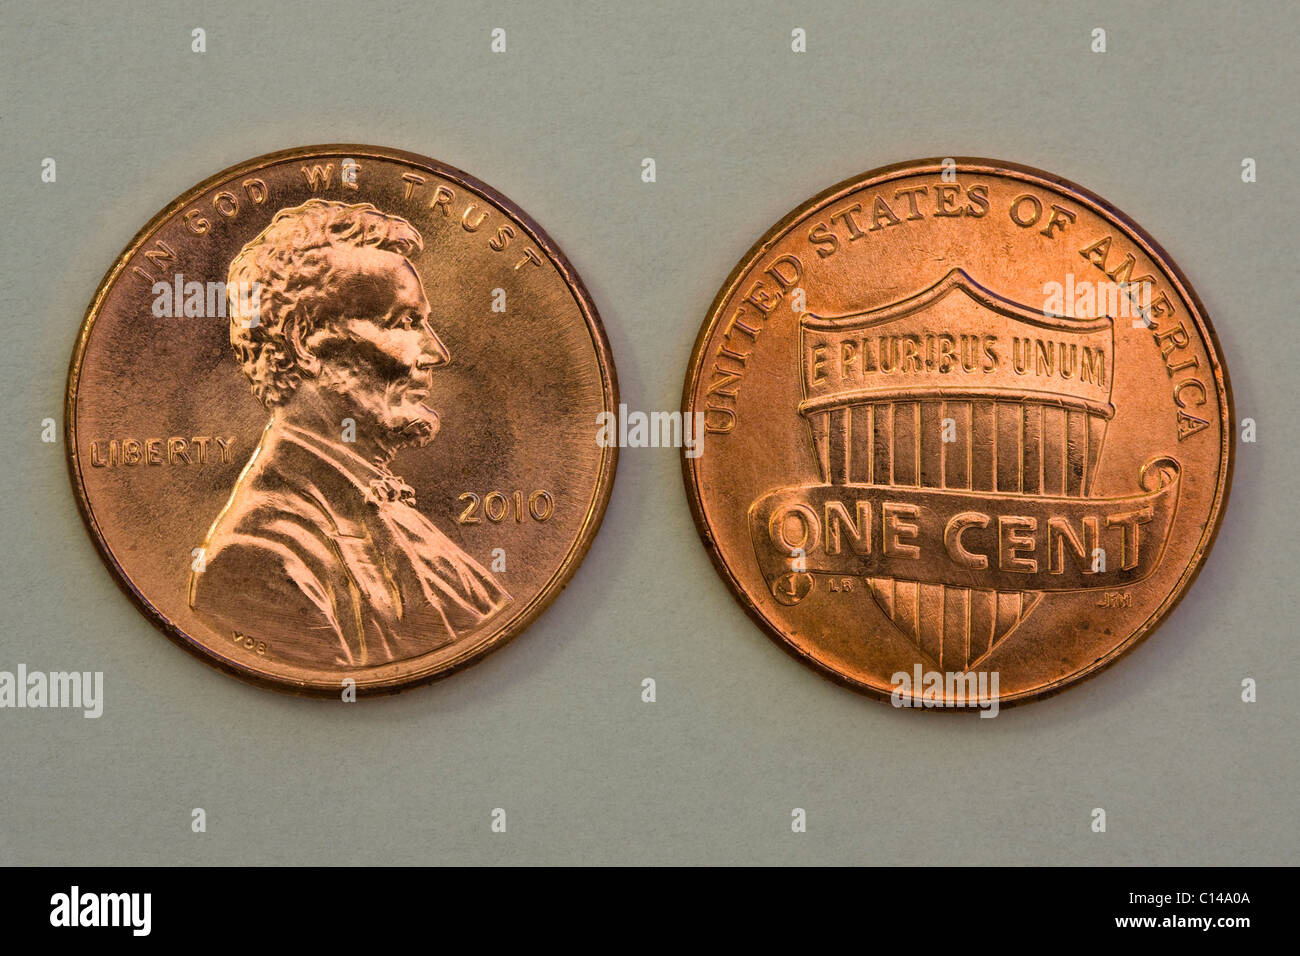 Redesign of the 2010 U.S. 1 Cent Coin showing obverse and reverse. - Stock Image